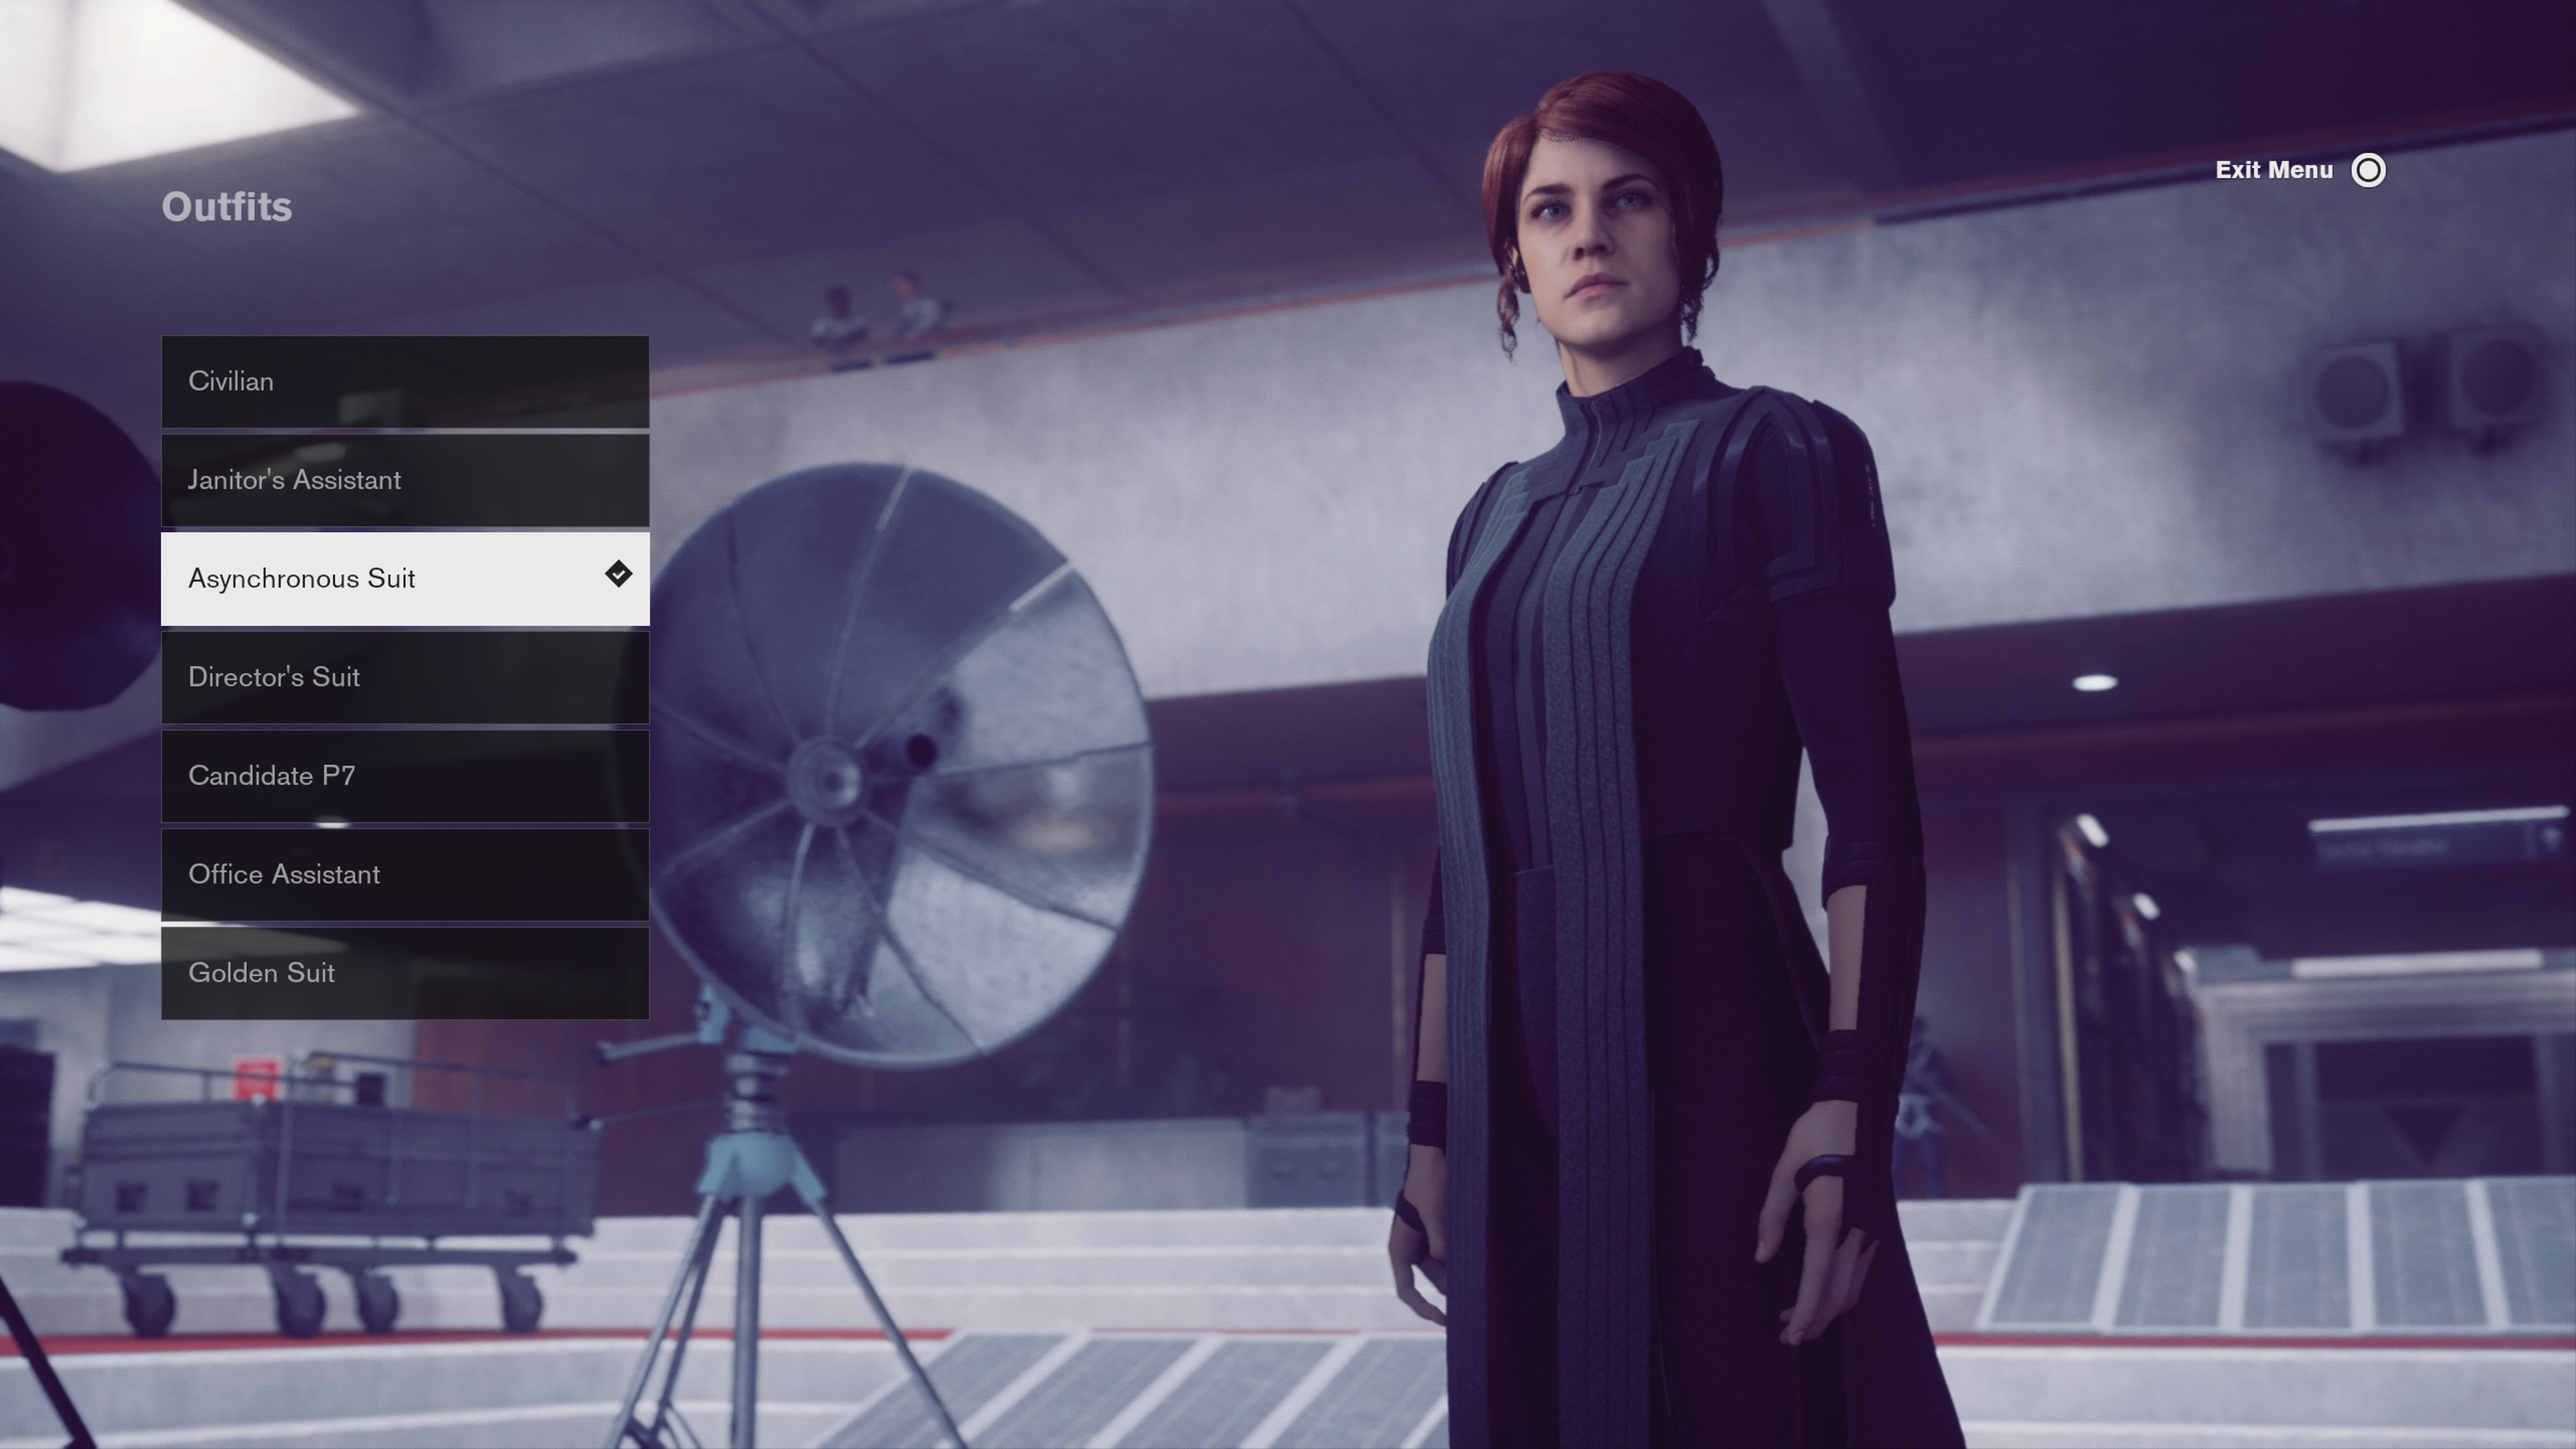 Asynchronous suit - all outfits in control